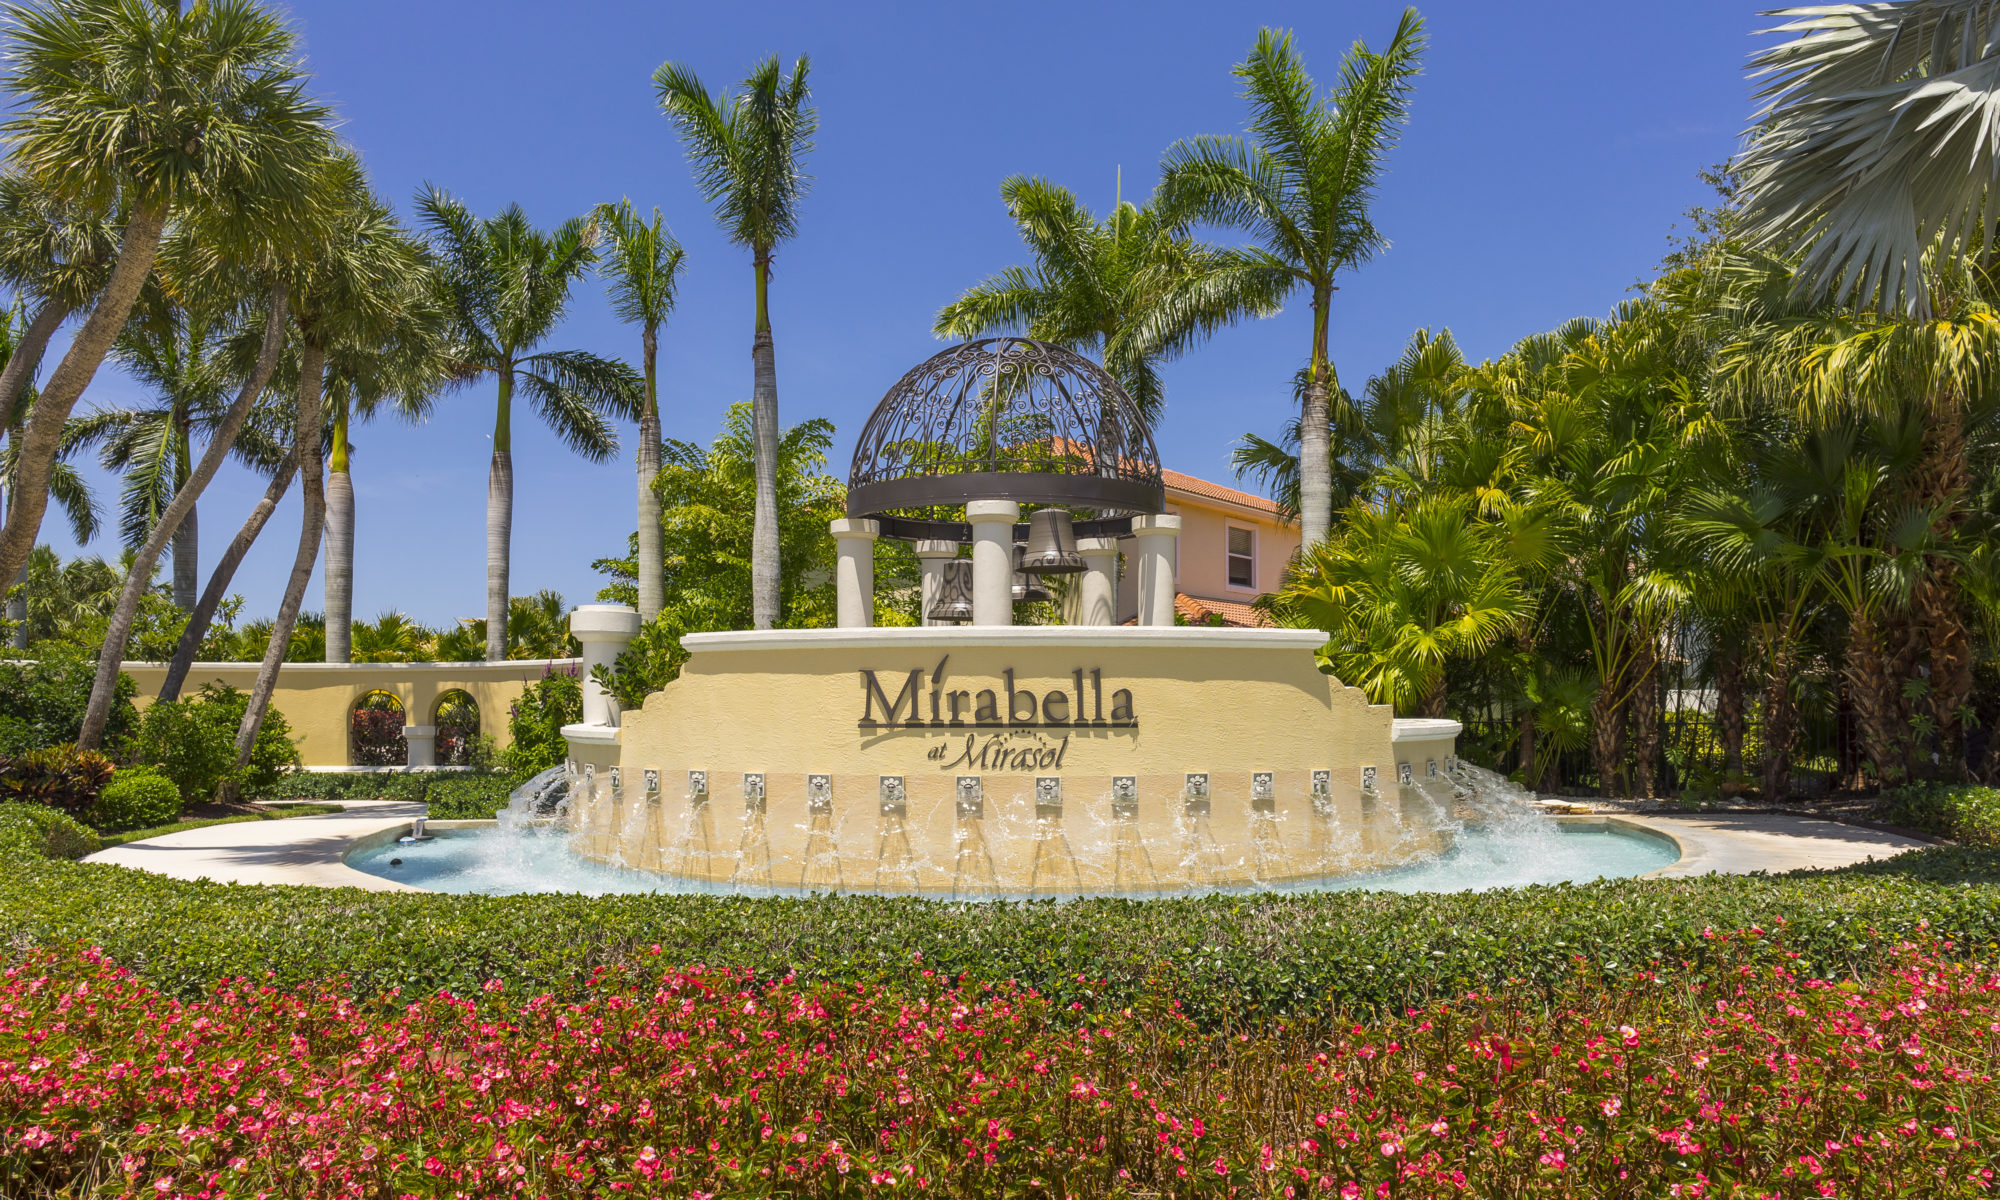 Mirabella-at-Mirasol-0_community-sign